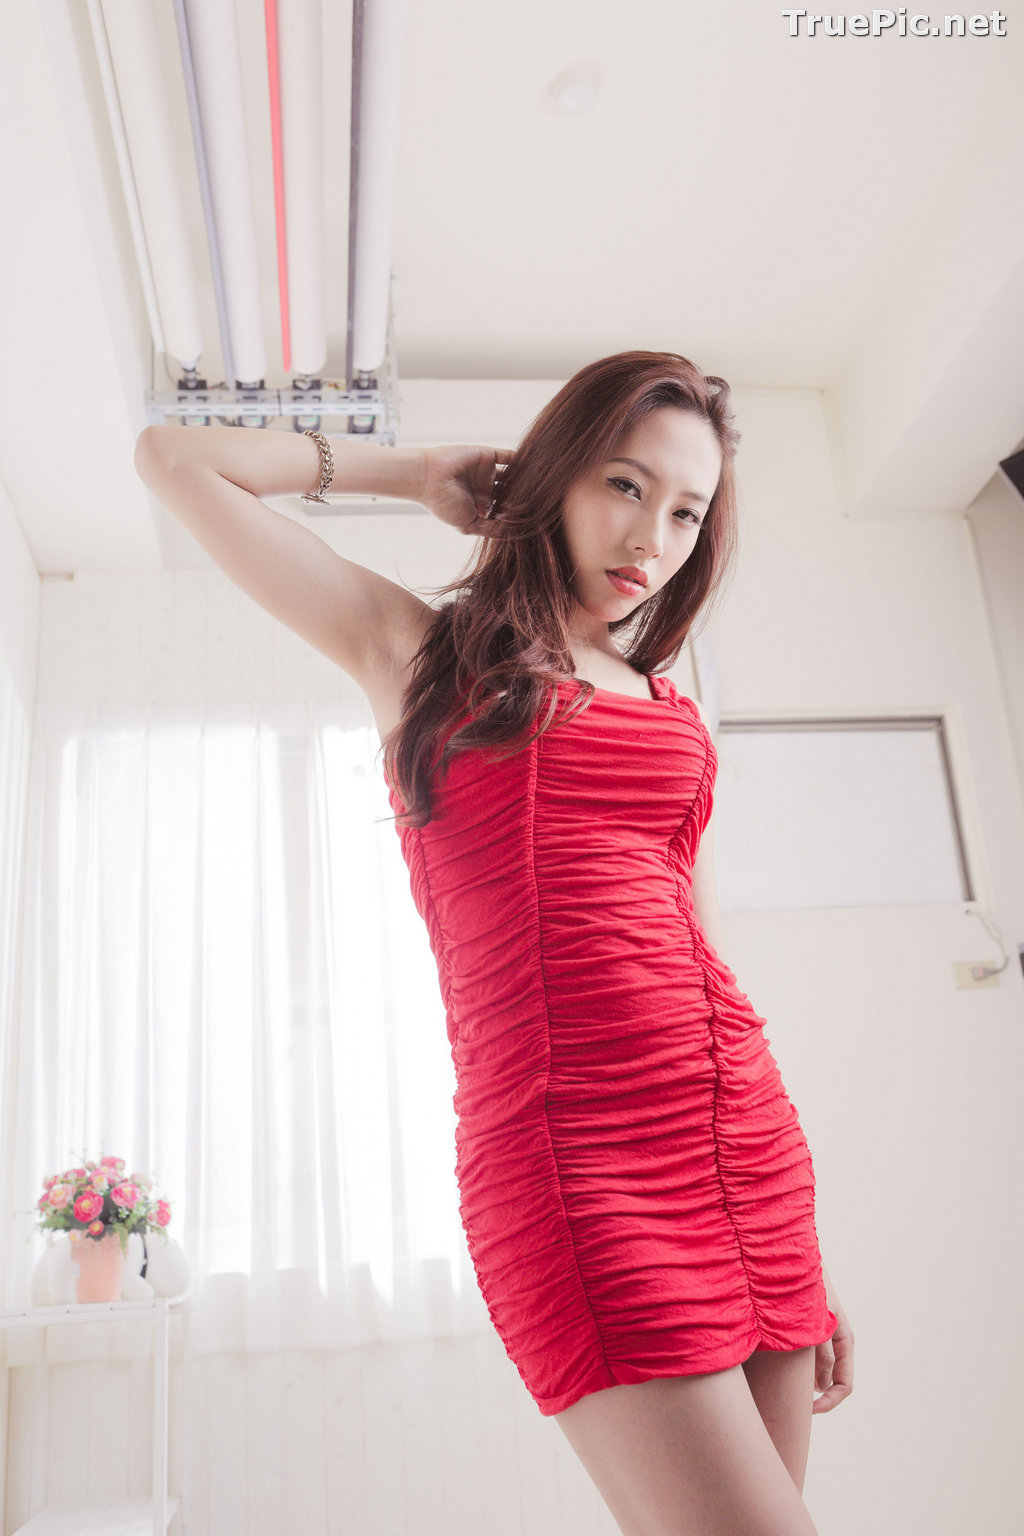 Image Taiwanese Model - Sabrina - Wild and Sexy - TruePic.net - Picture-2